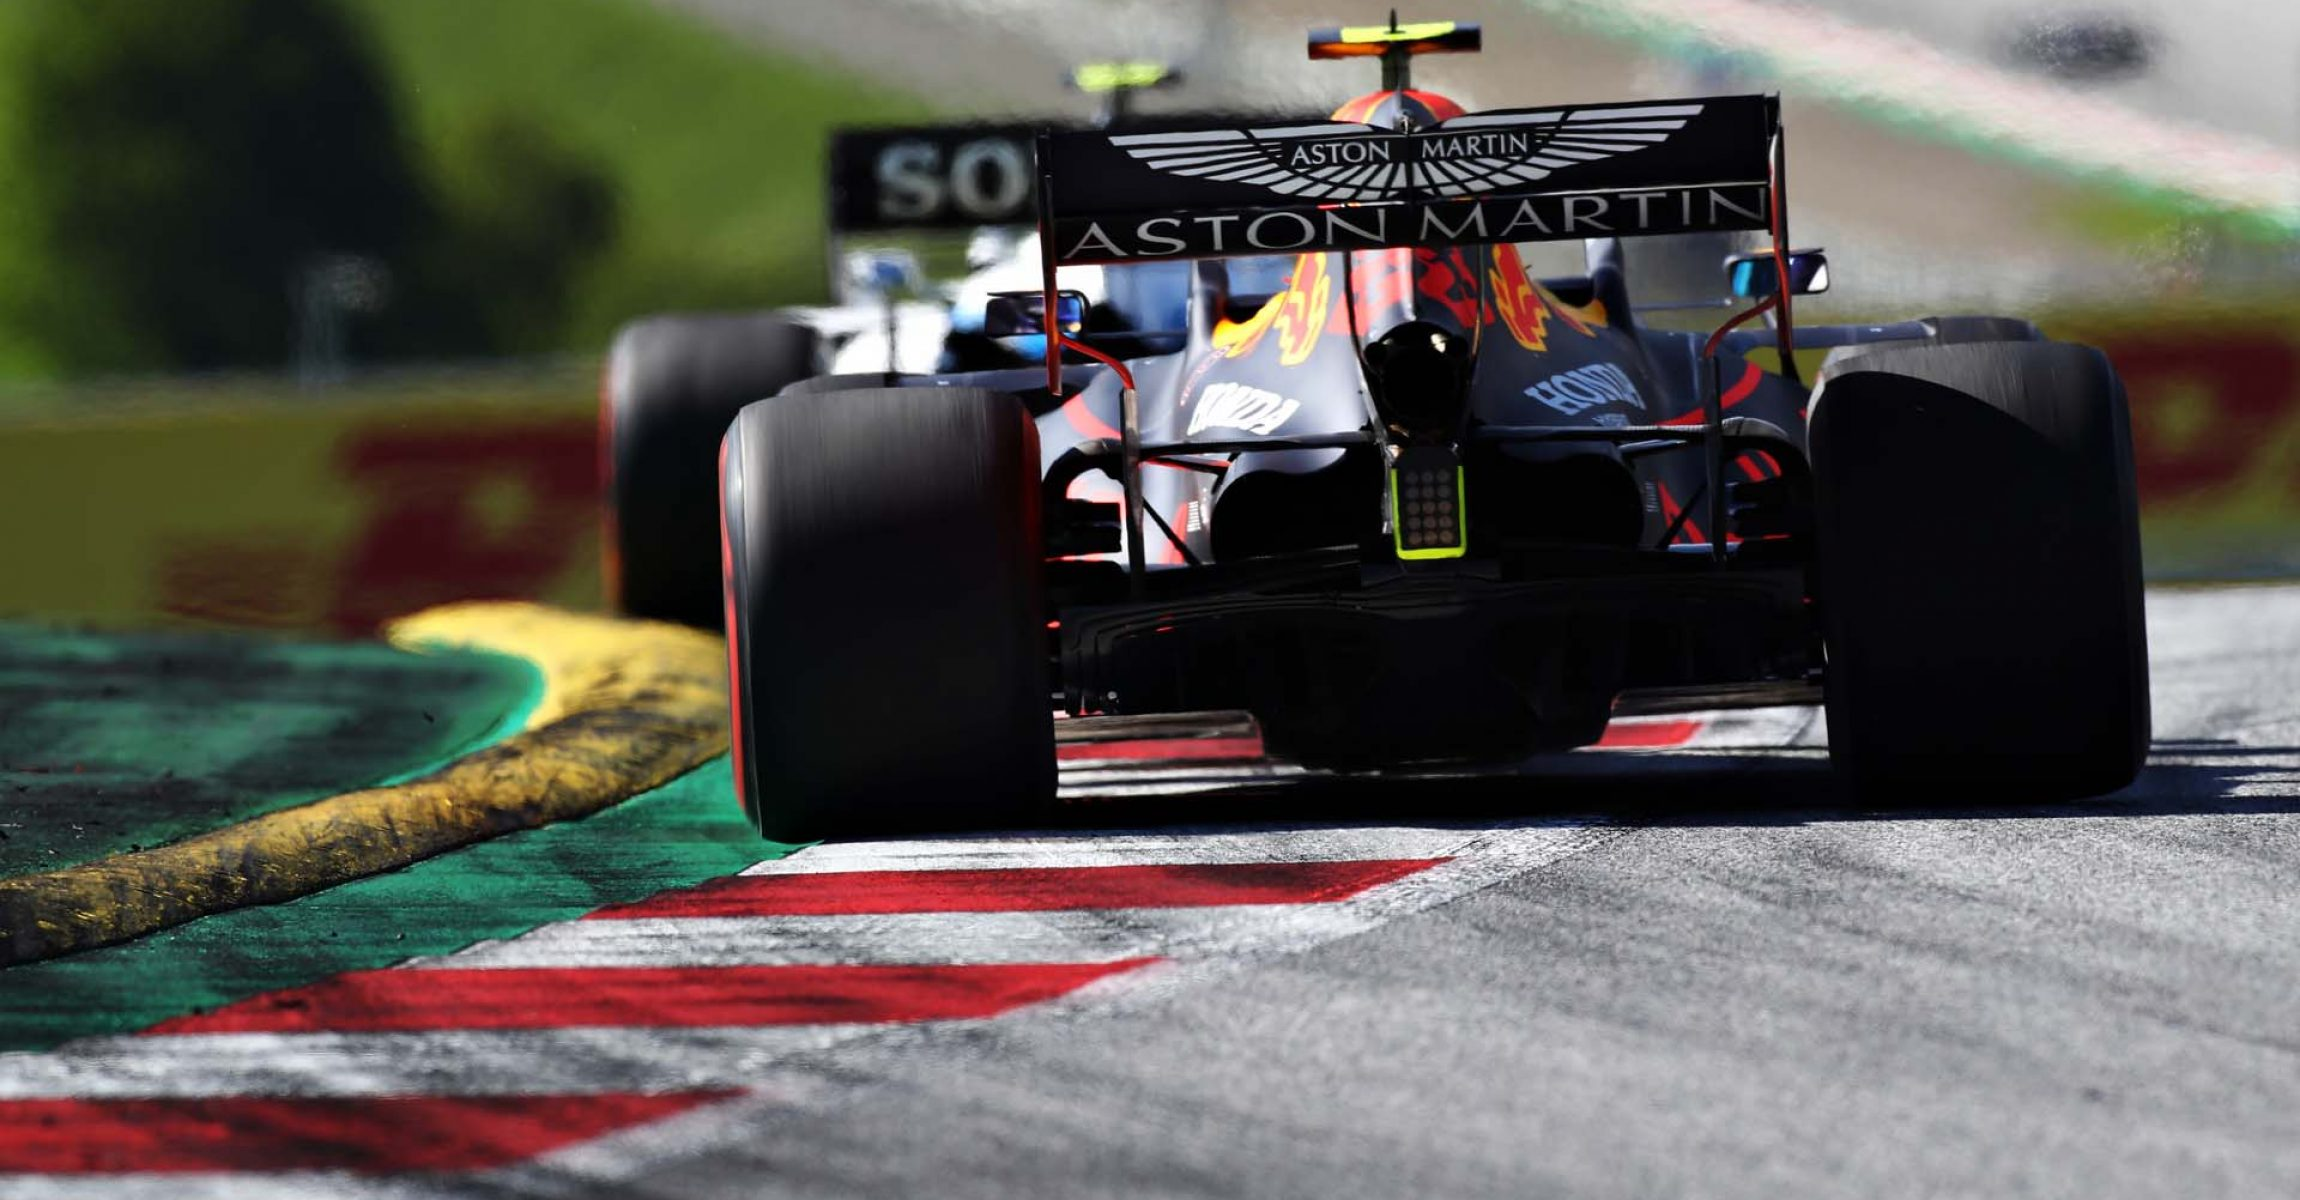 SPIELBERG, AUSTRIA - JULY 05: Alexander Albon of Thailand driving the (23) Aston Martin Red Bull Racing RB16 on track during the Formula One Grand Prix of Austria at Red Bull Ring on July 05, 2020 in Spielberg, Austria. (Photo by Mark Thompson/Getty Images) // Getty Images / Red Bull Content Pool // AP-24HPTSWF51W11 // Usage for editorial use only //